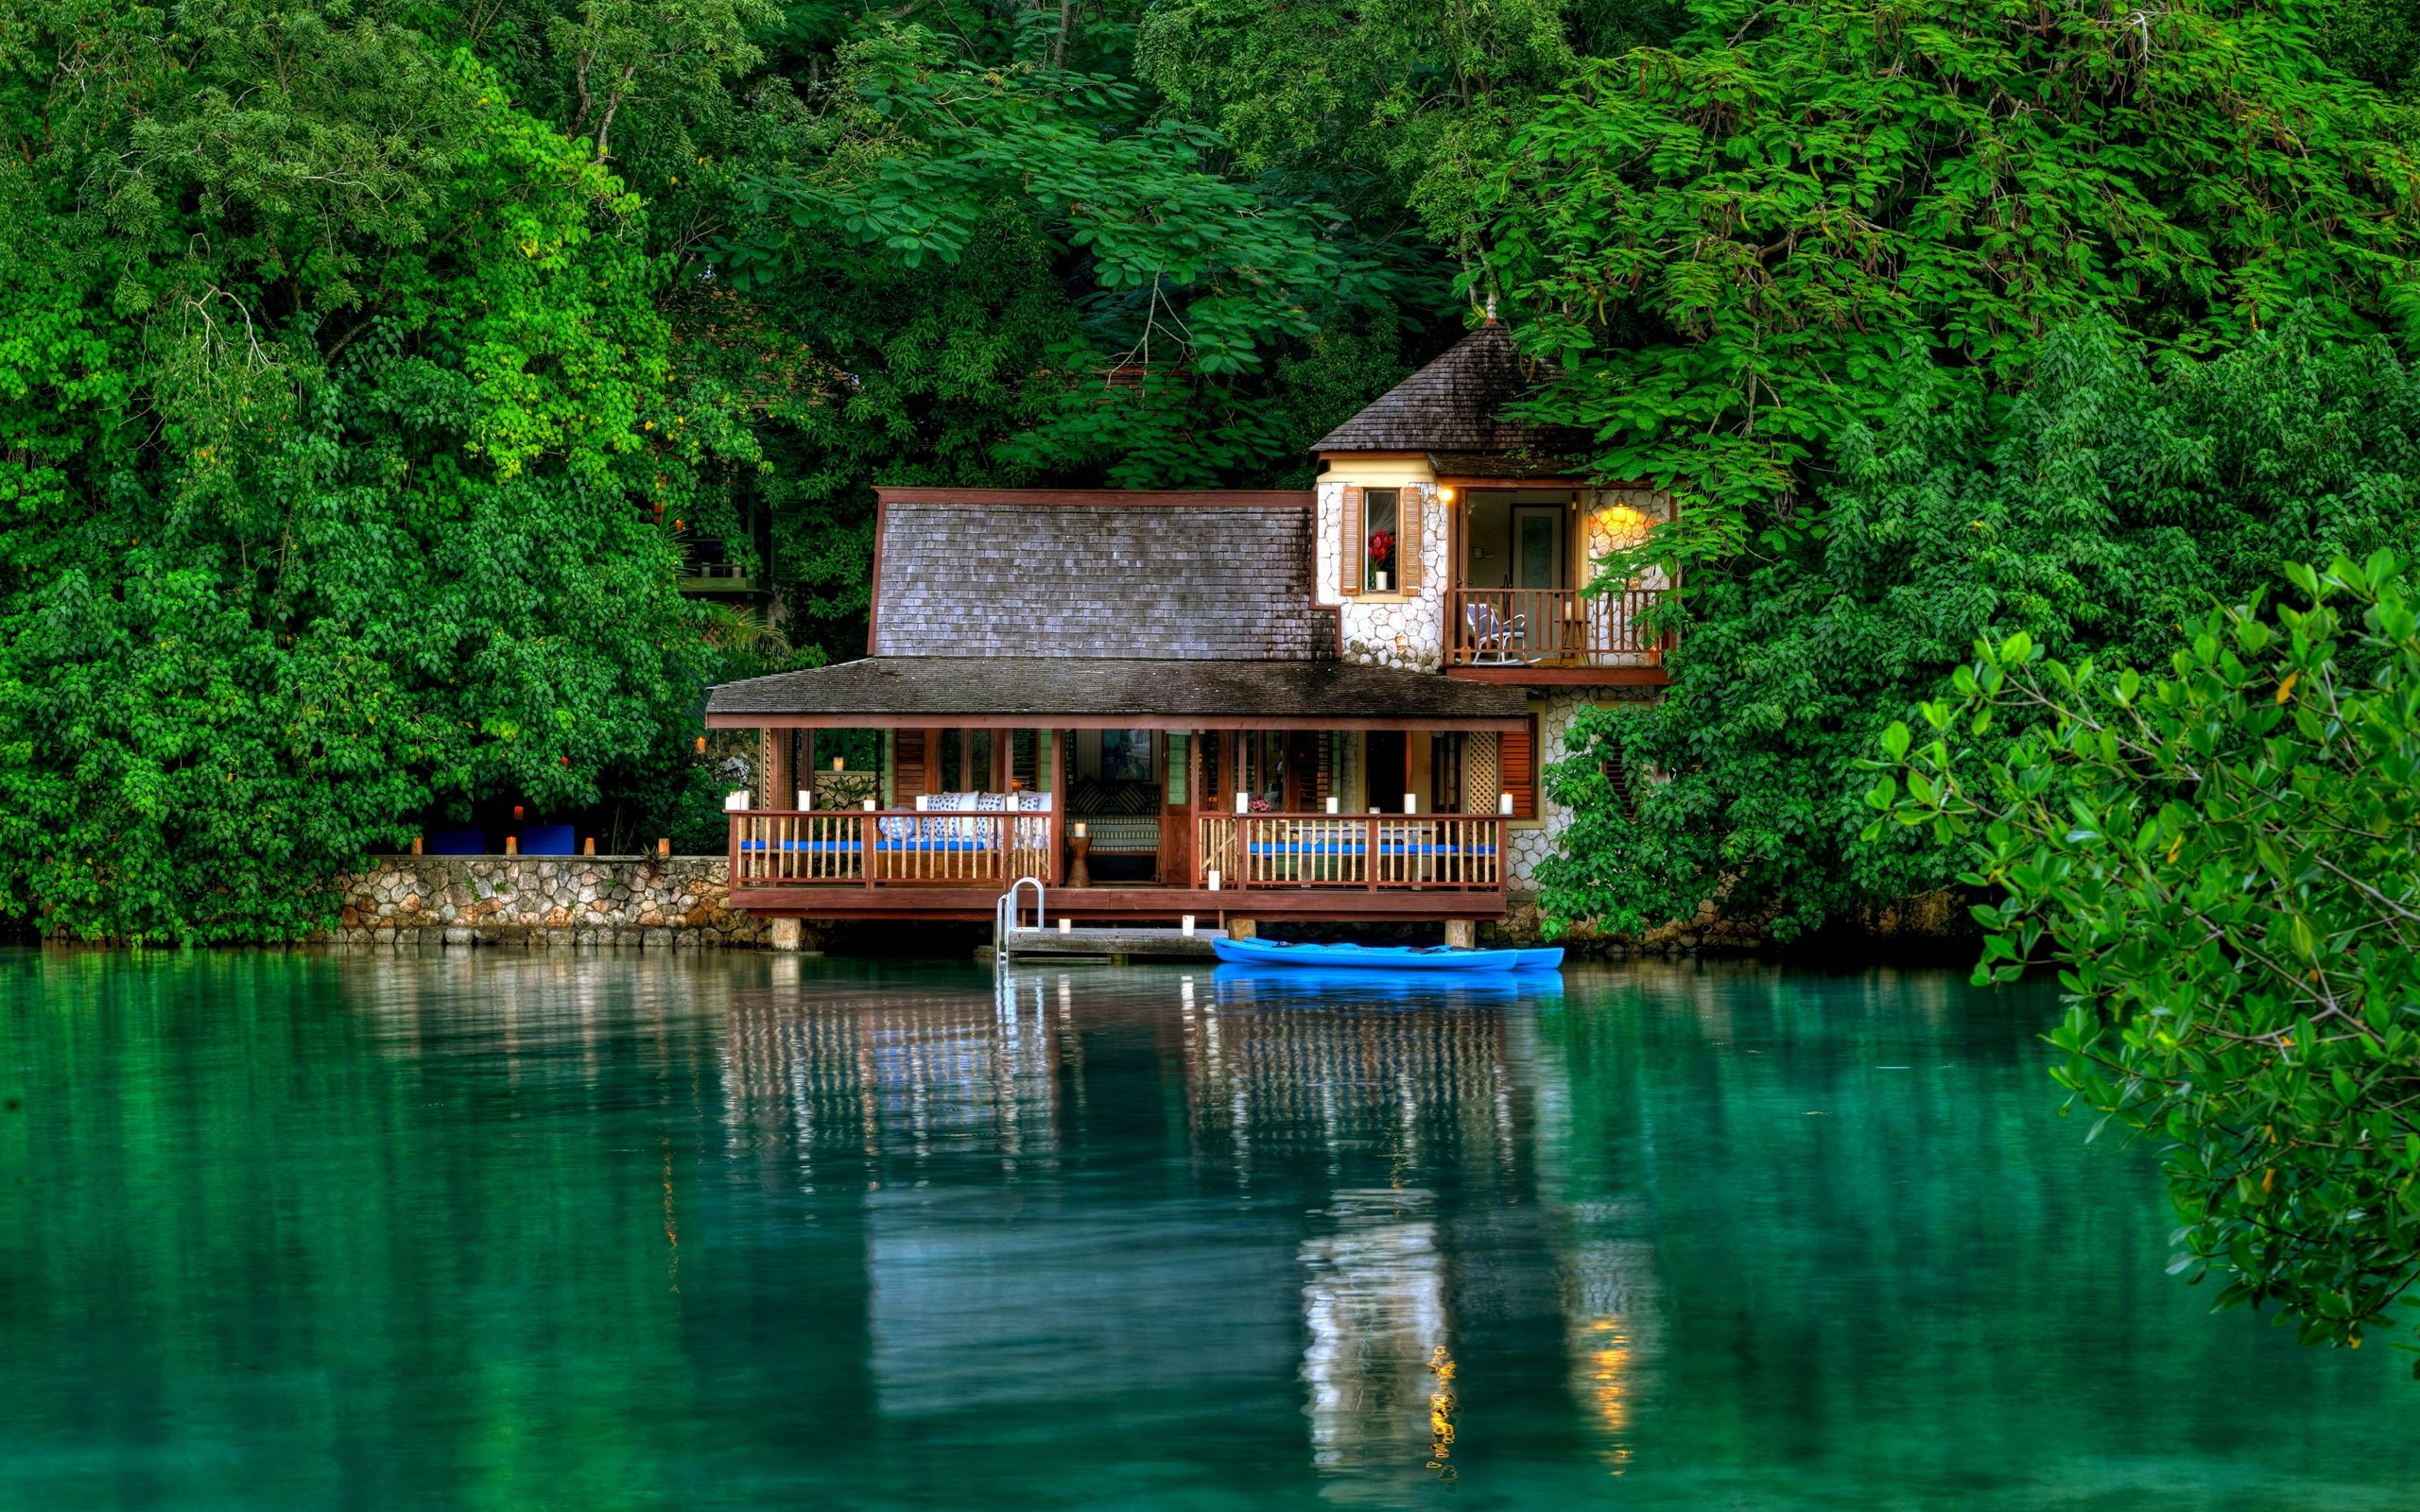 Haus am see wallpaper  https://s-media-cache-ak0.pinimg.com/originals/86/...